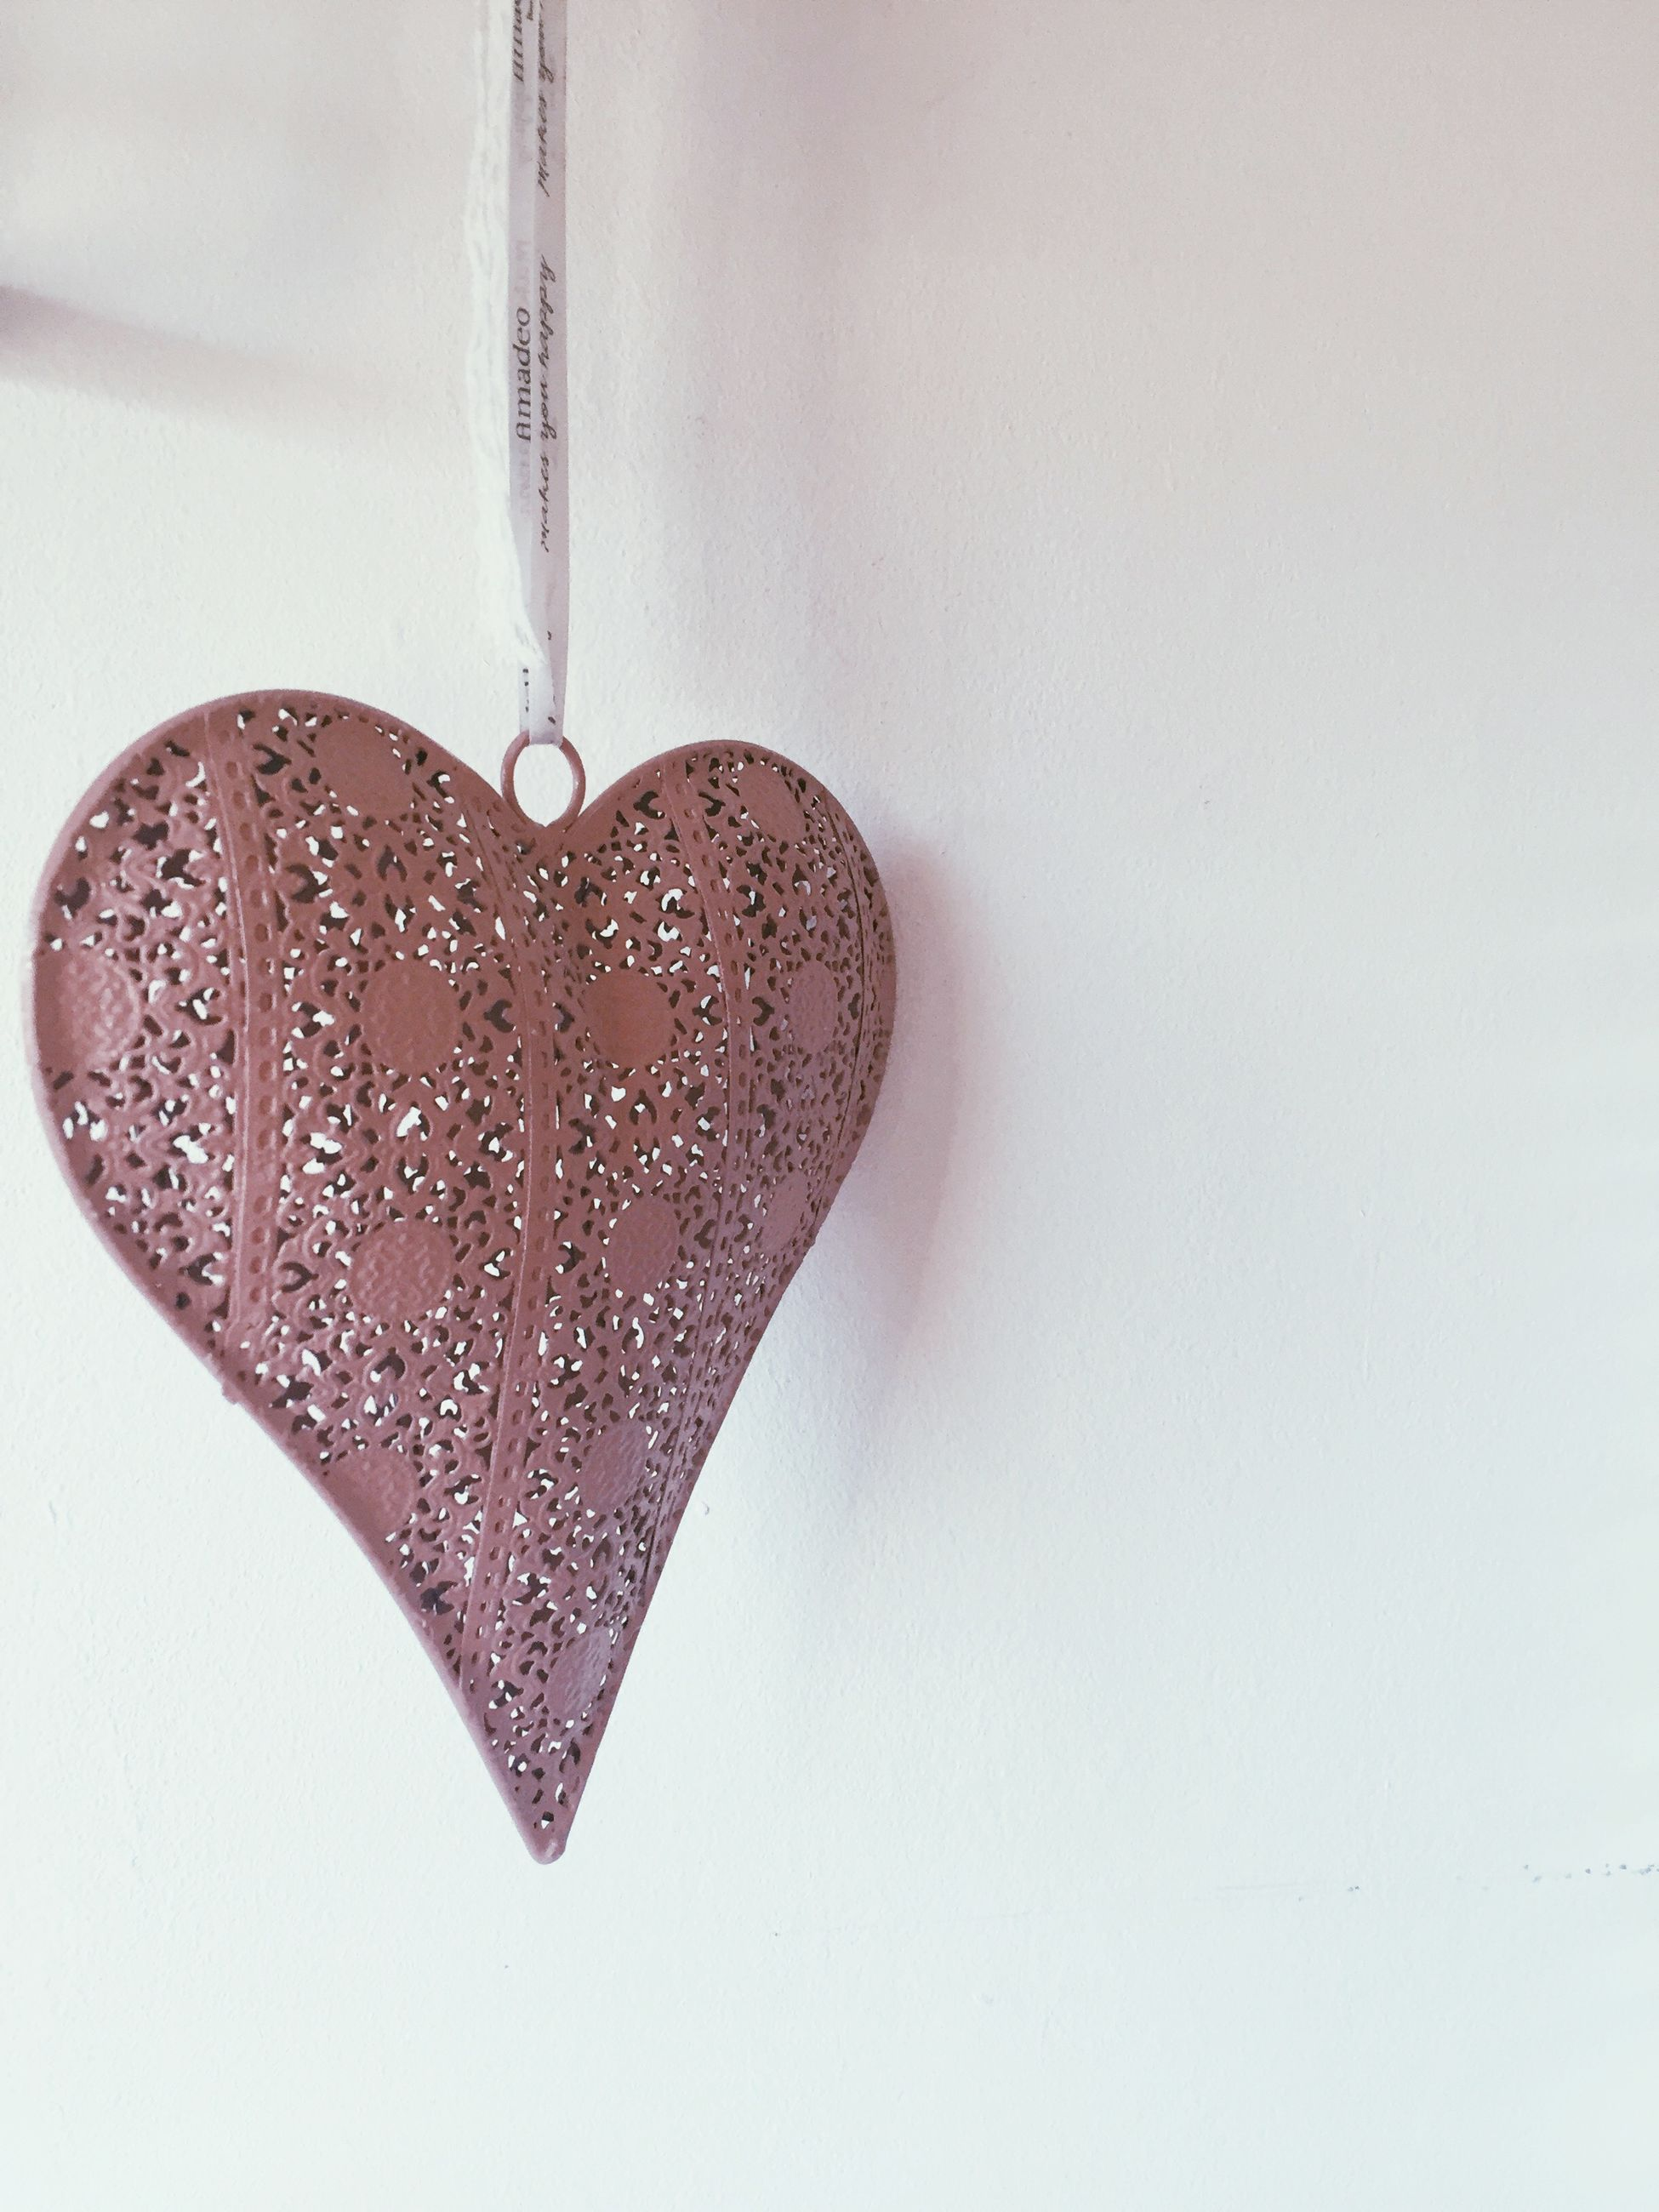 heart shape, positive emotion, love, emotion, no people, close-up, indoors, copy space, design, wall - building feature, still life, hanging, studio shot, creativity, white background, decoration, pattern, shape, art and craft, food, temptation, floral pattern